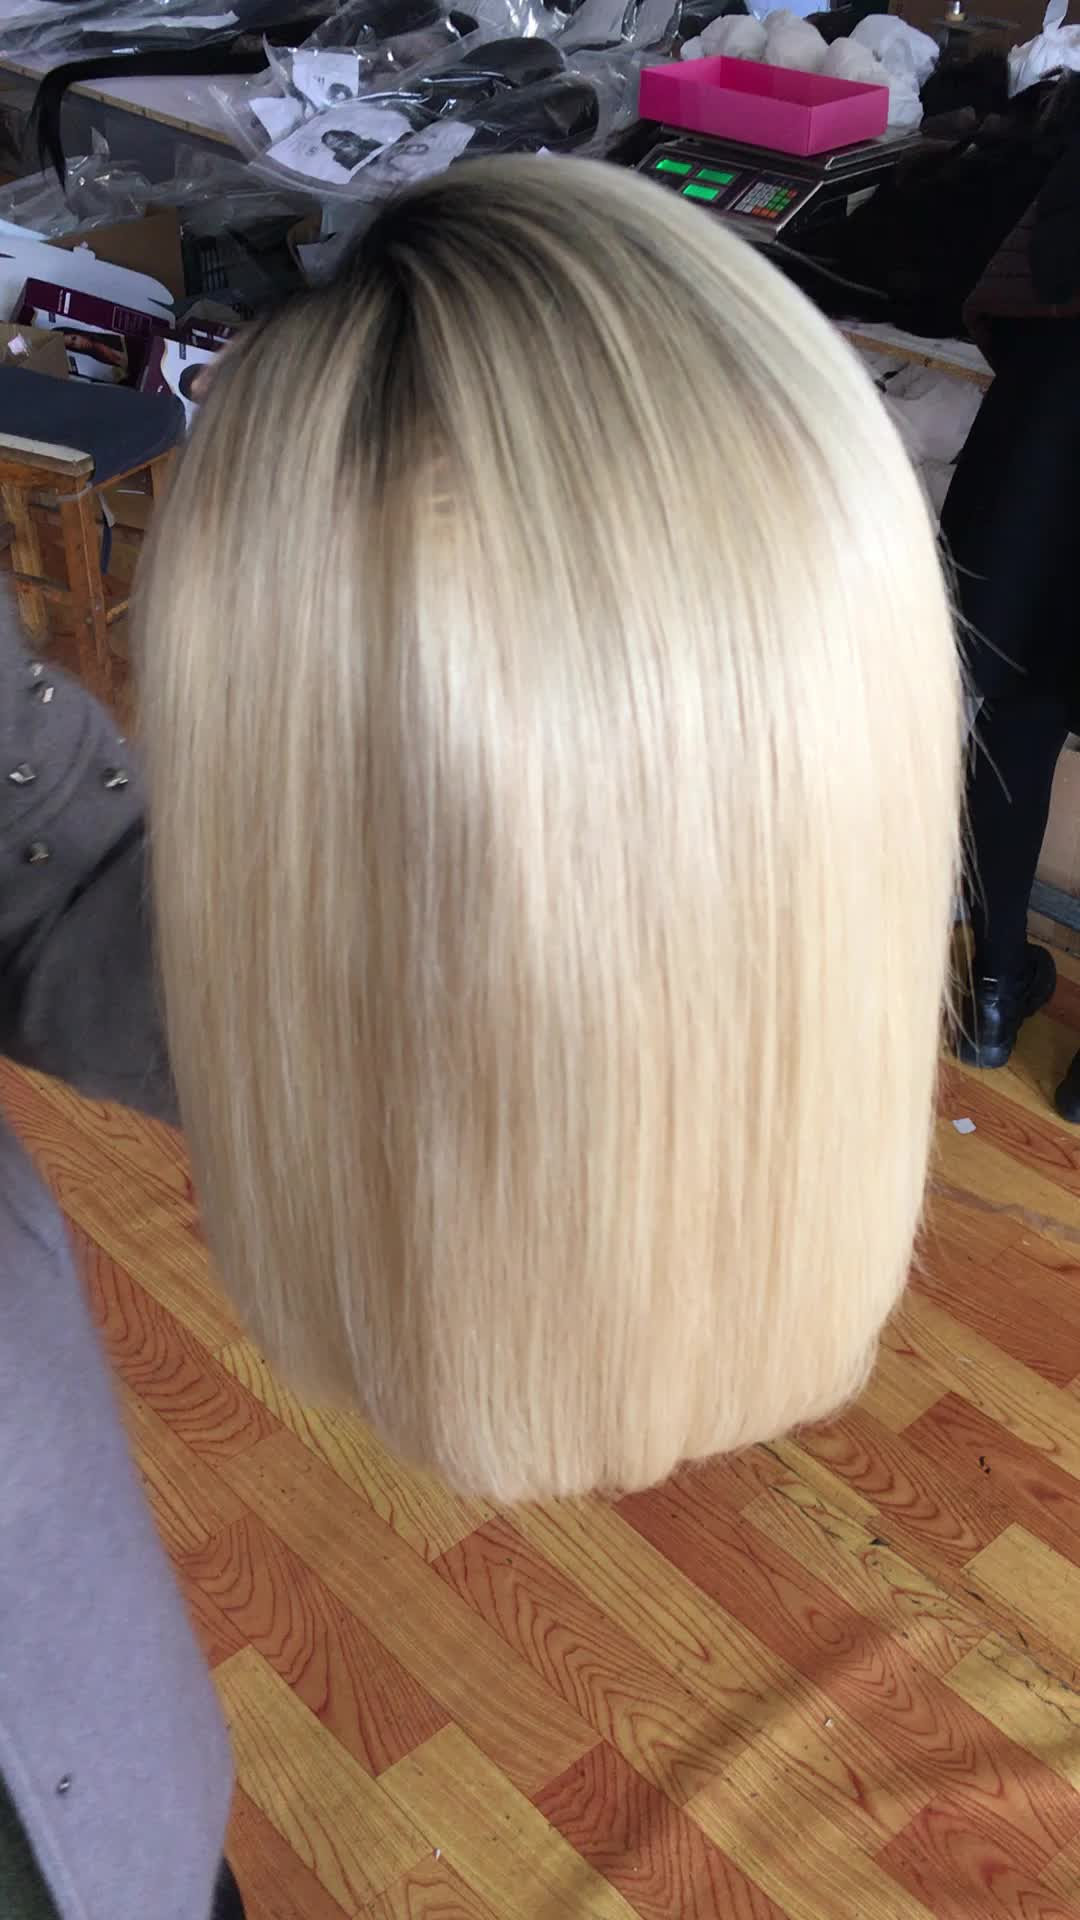 Human Hair Wigs Blonde Lace Front Short Human Hair Wigs 1b 613 Full Lace Wig